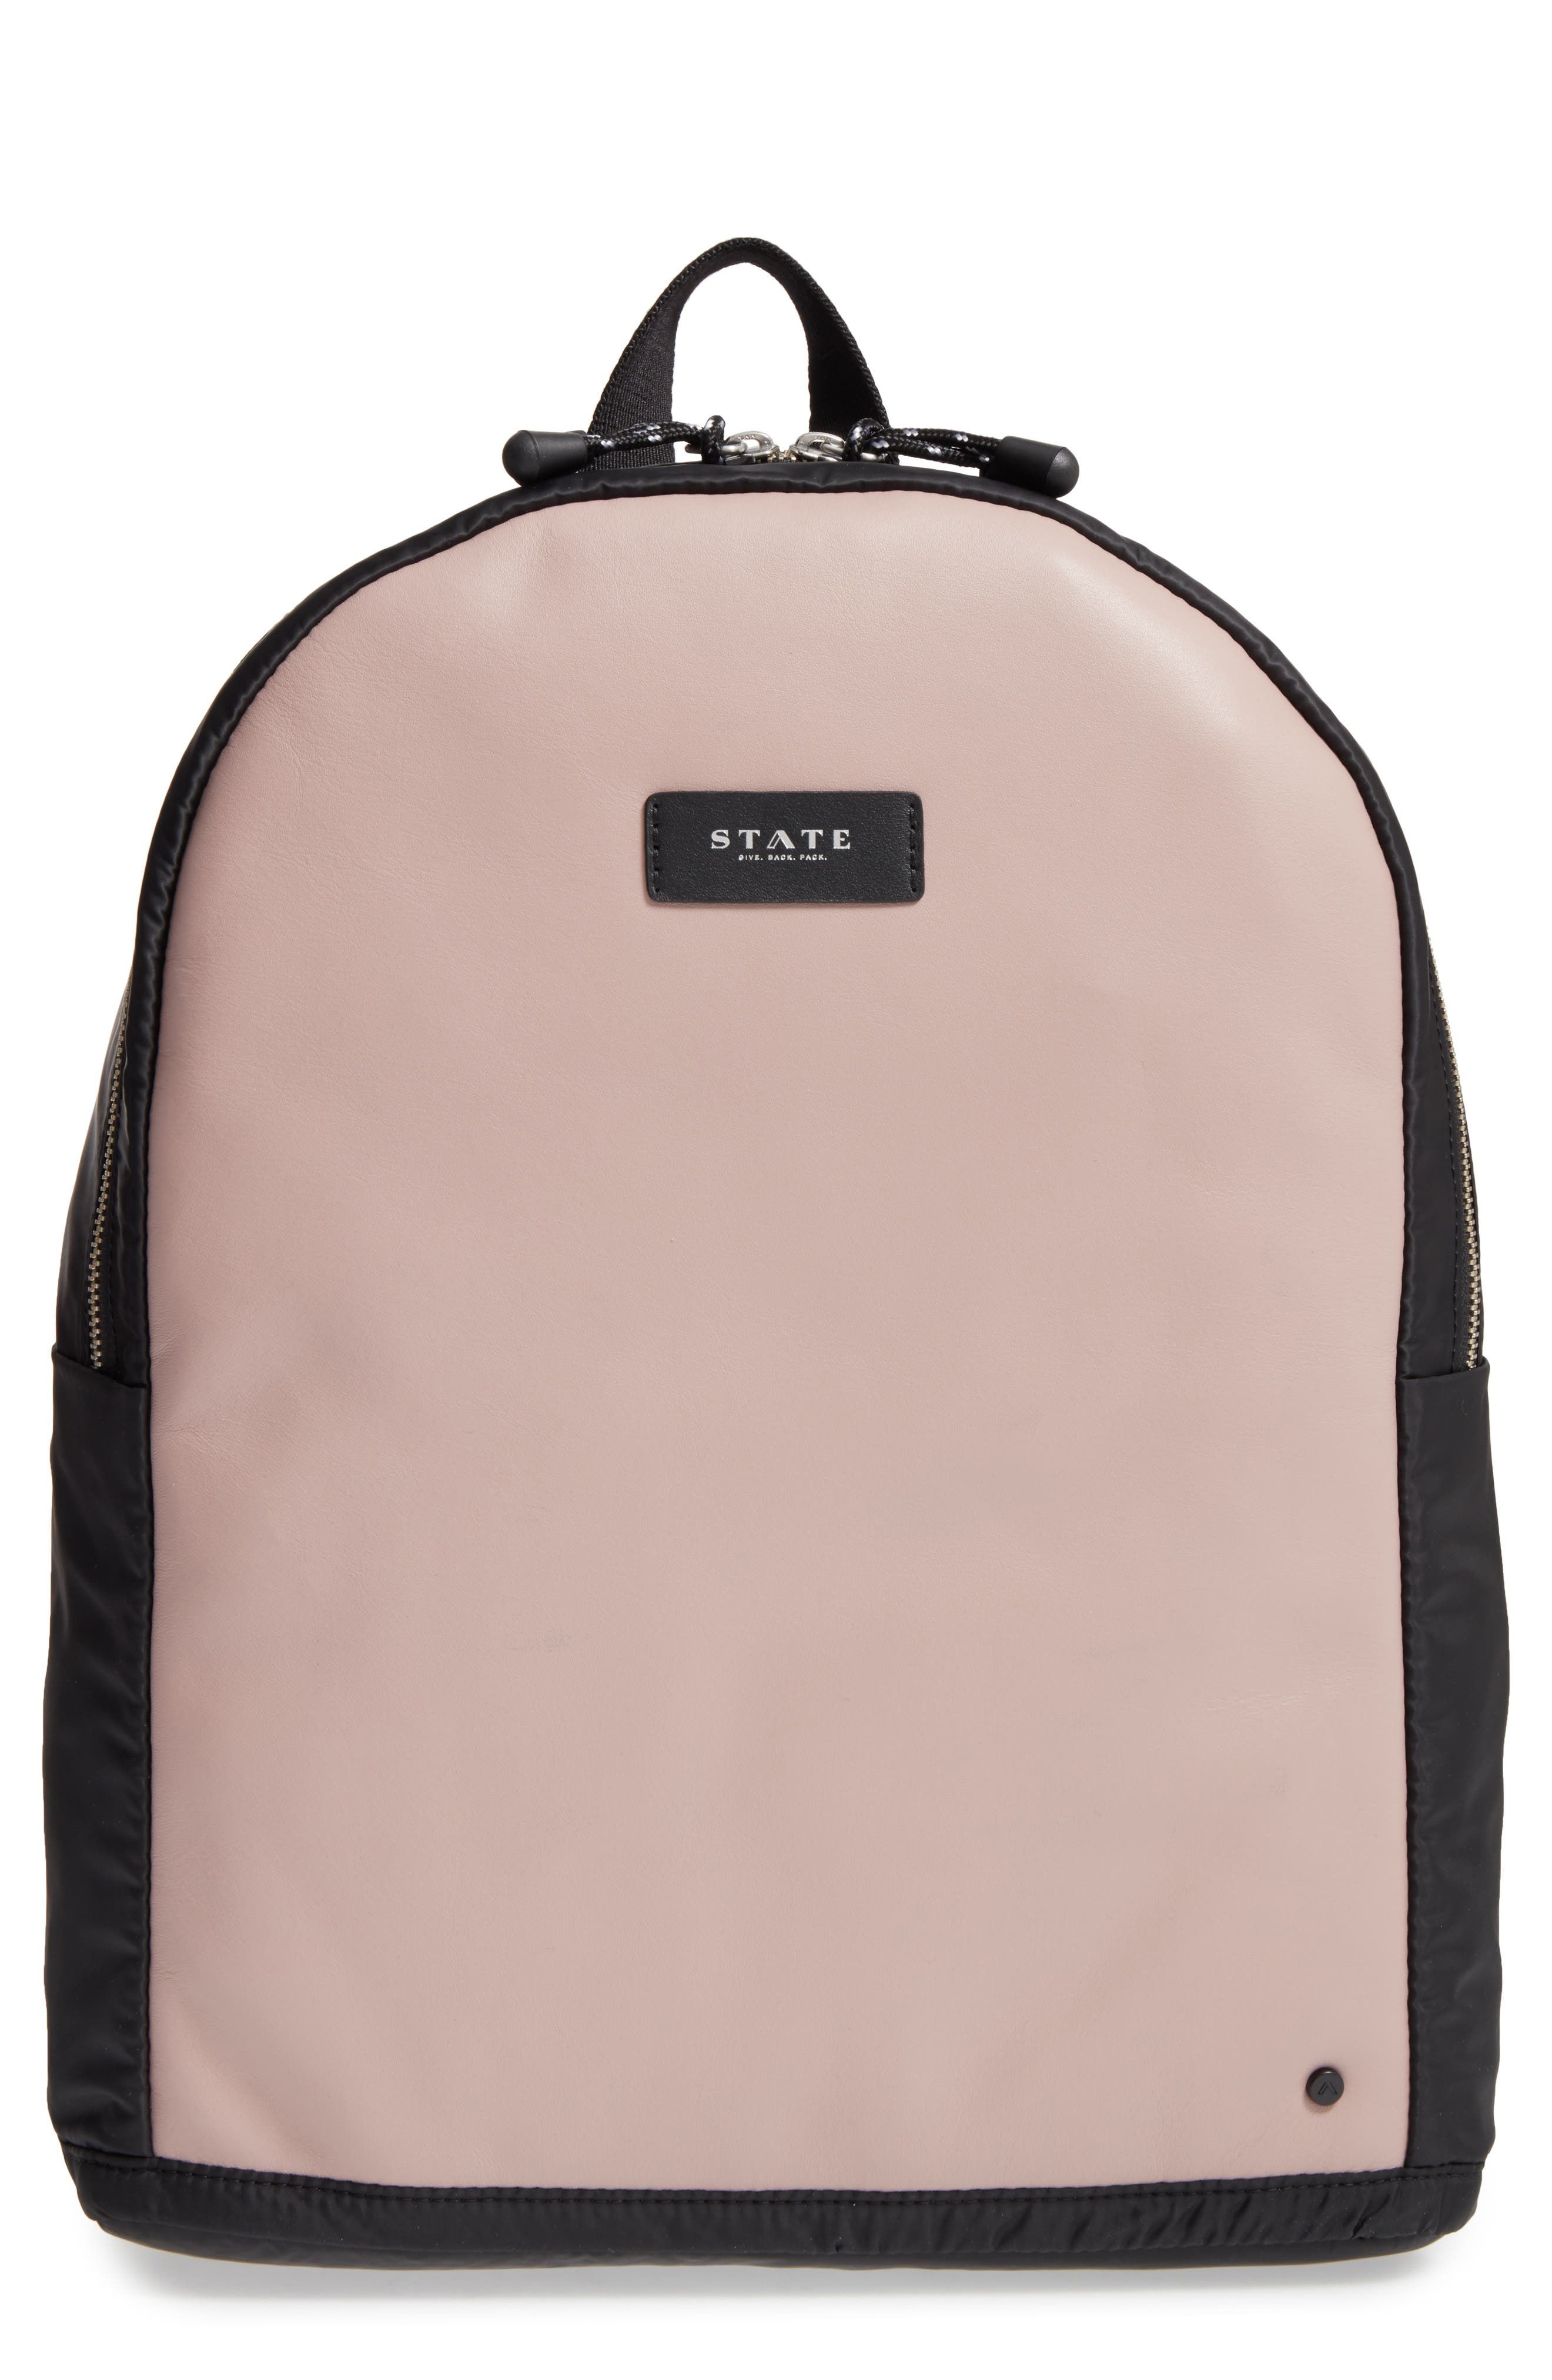 STATE BAGS Cass Backpack, Main, color, 650